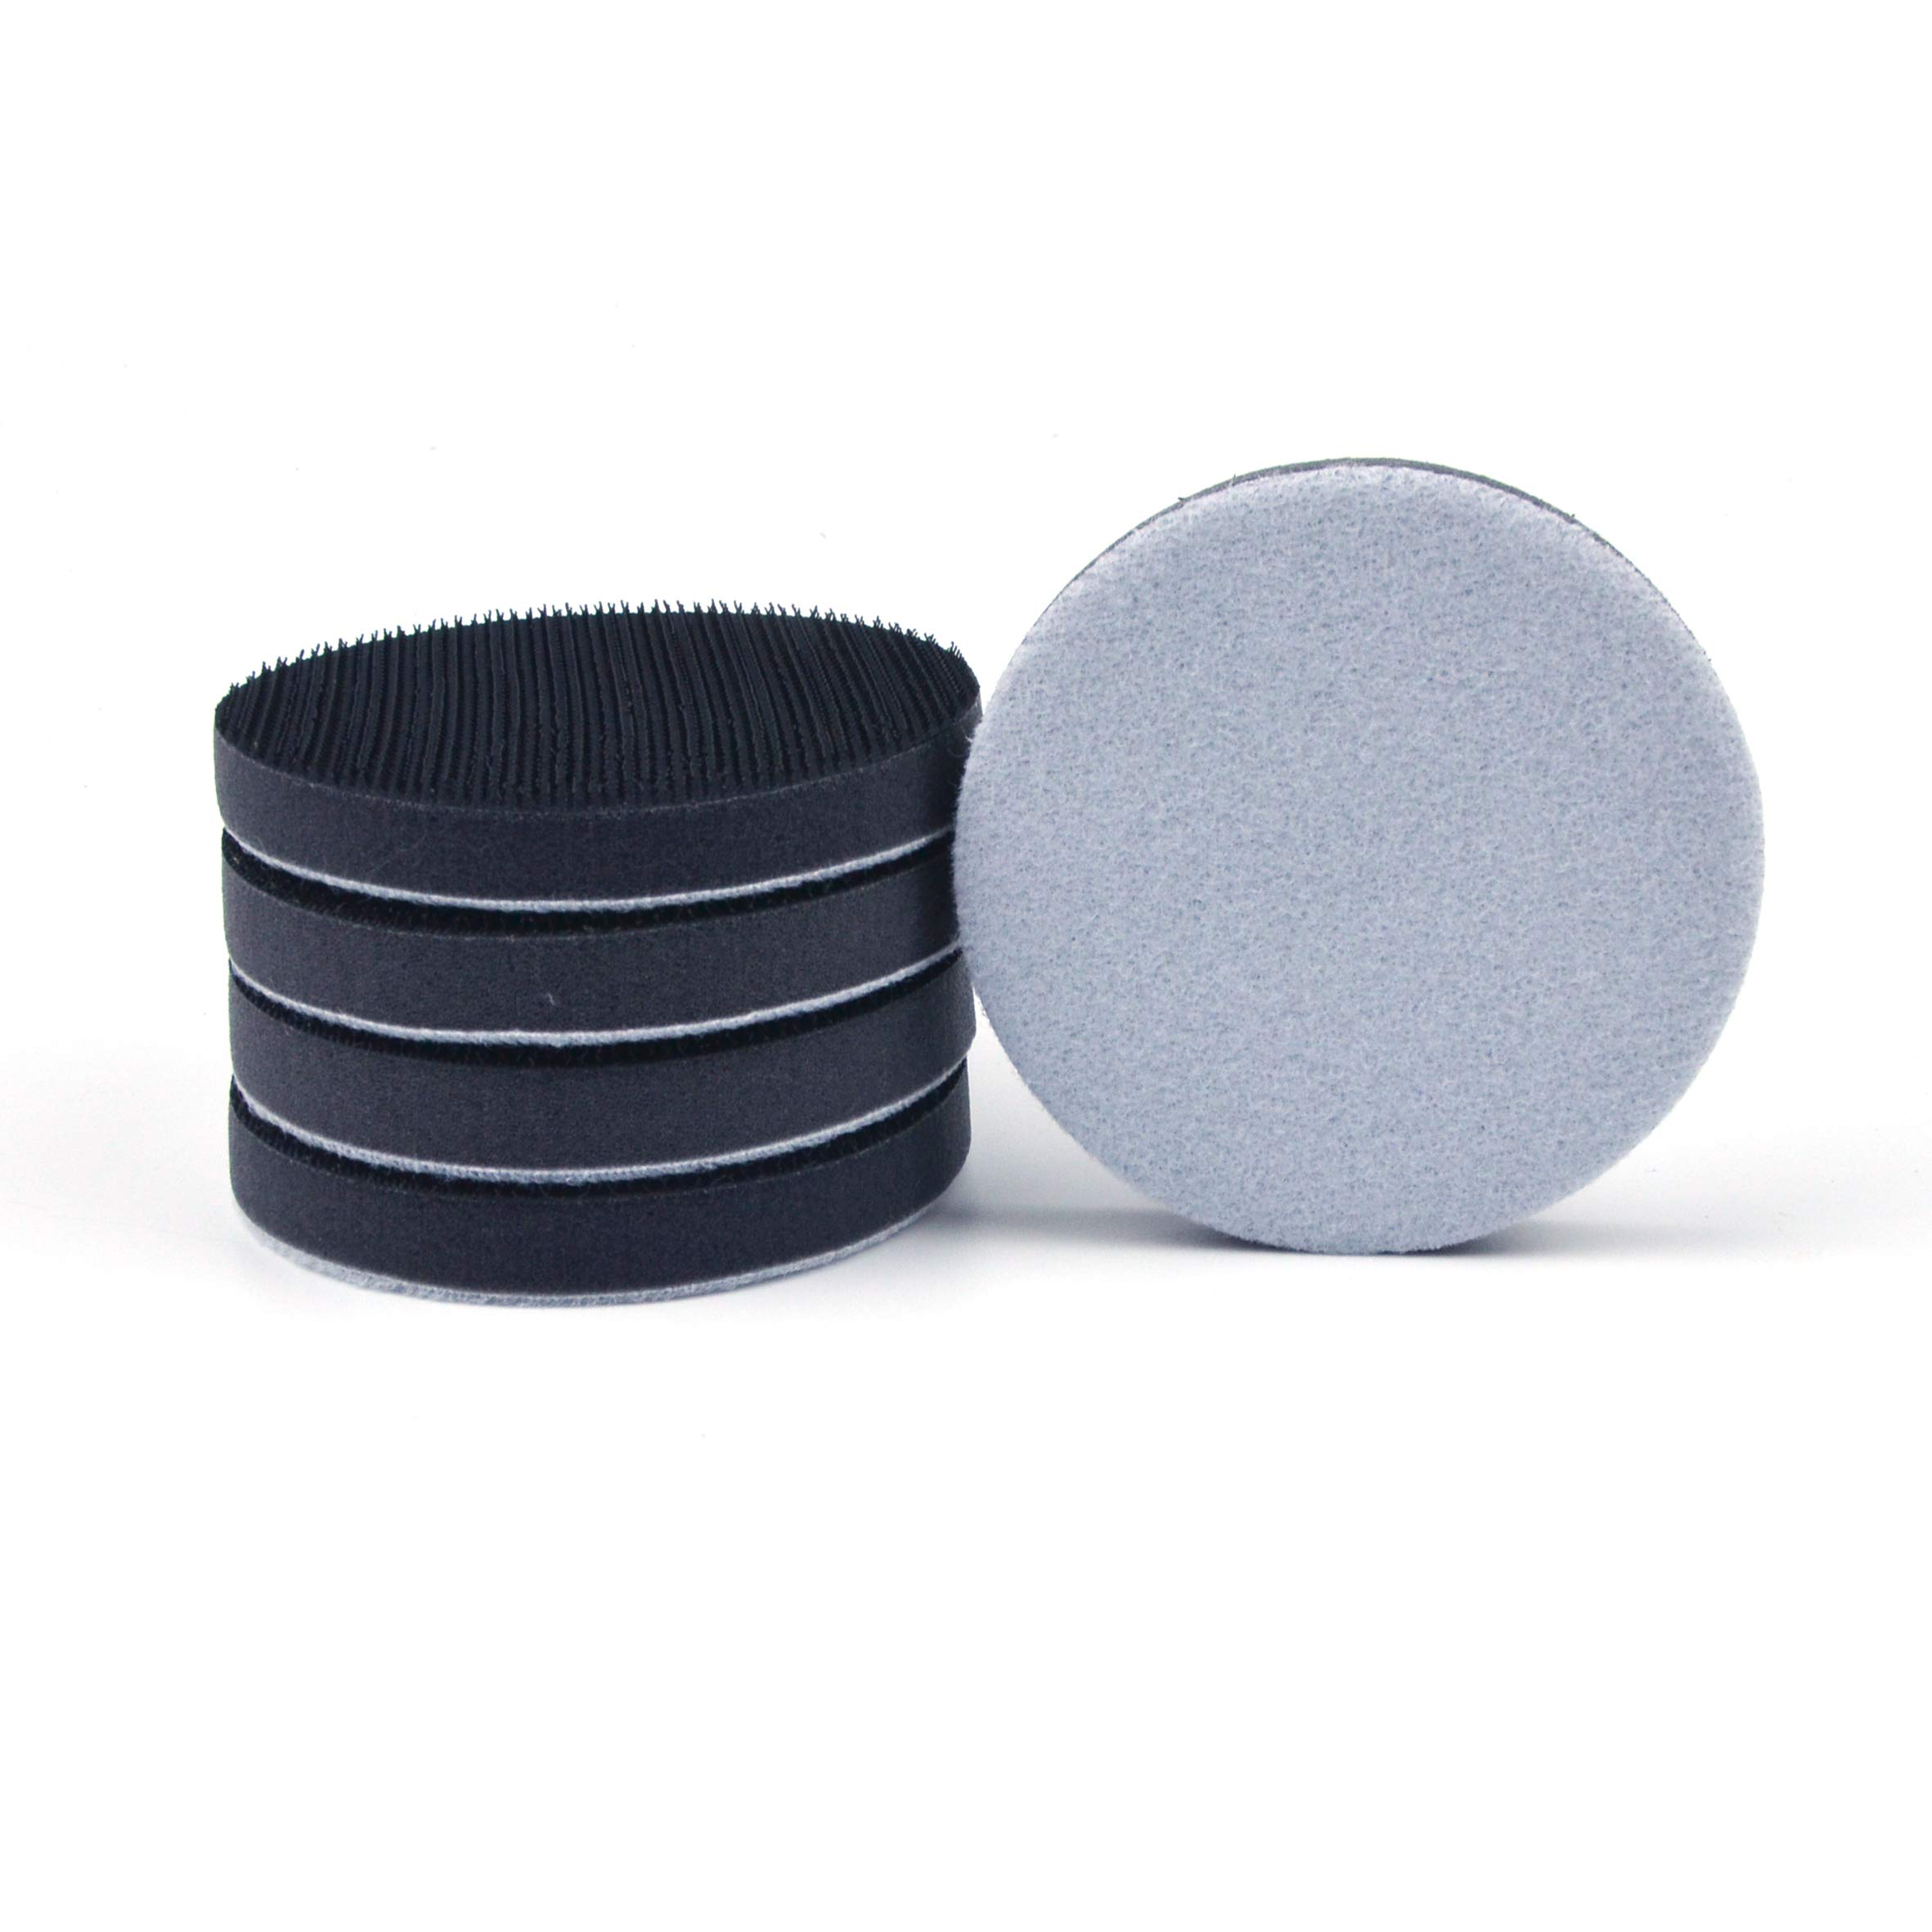 3 Inch (75mm) Hook and Loop Soft Foam Buffering Pad for 3'' Sanding Pad, 5 Pack by e-ROOKIE